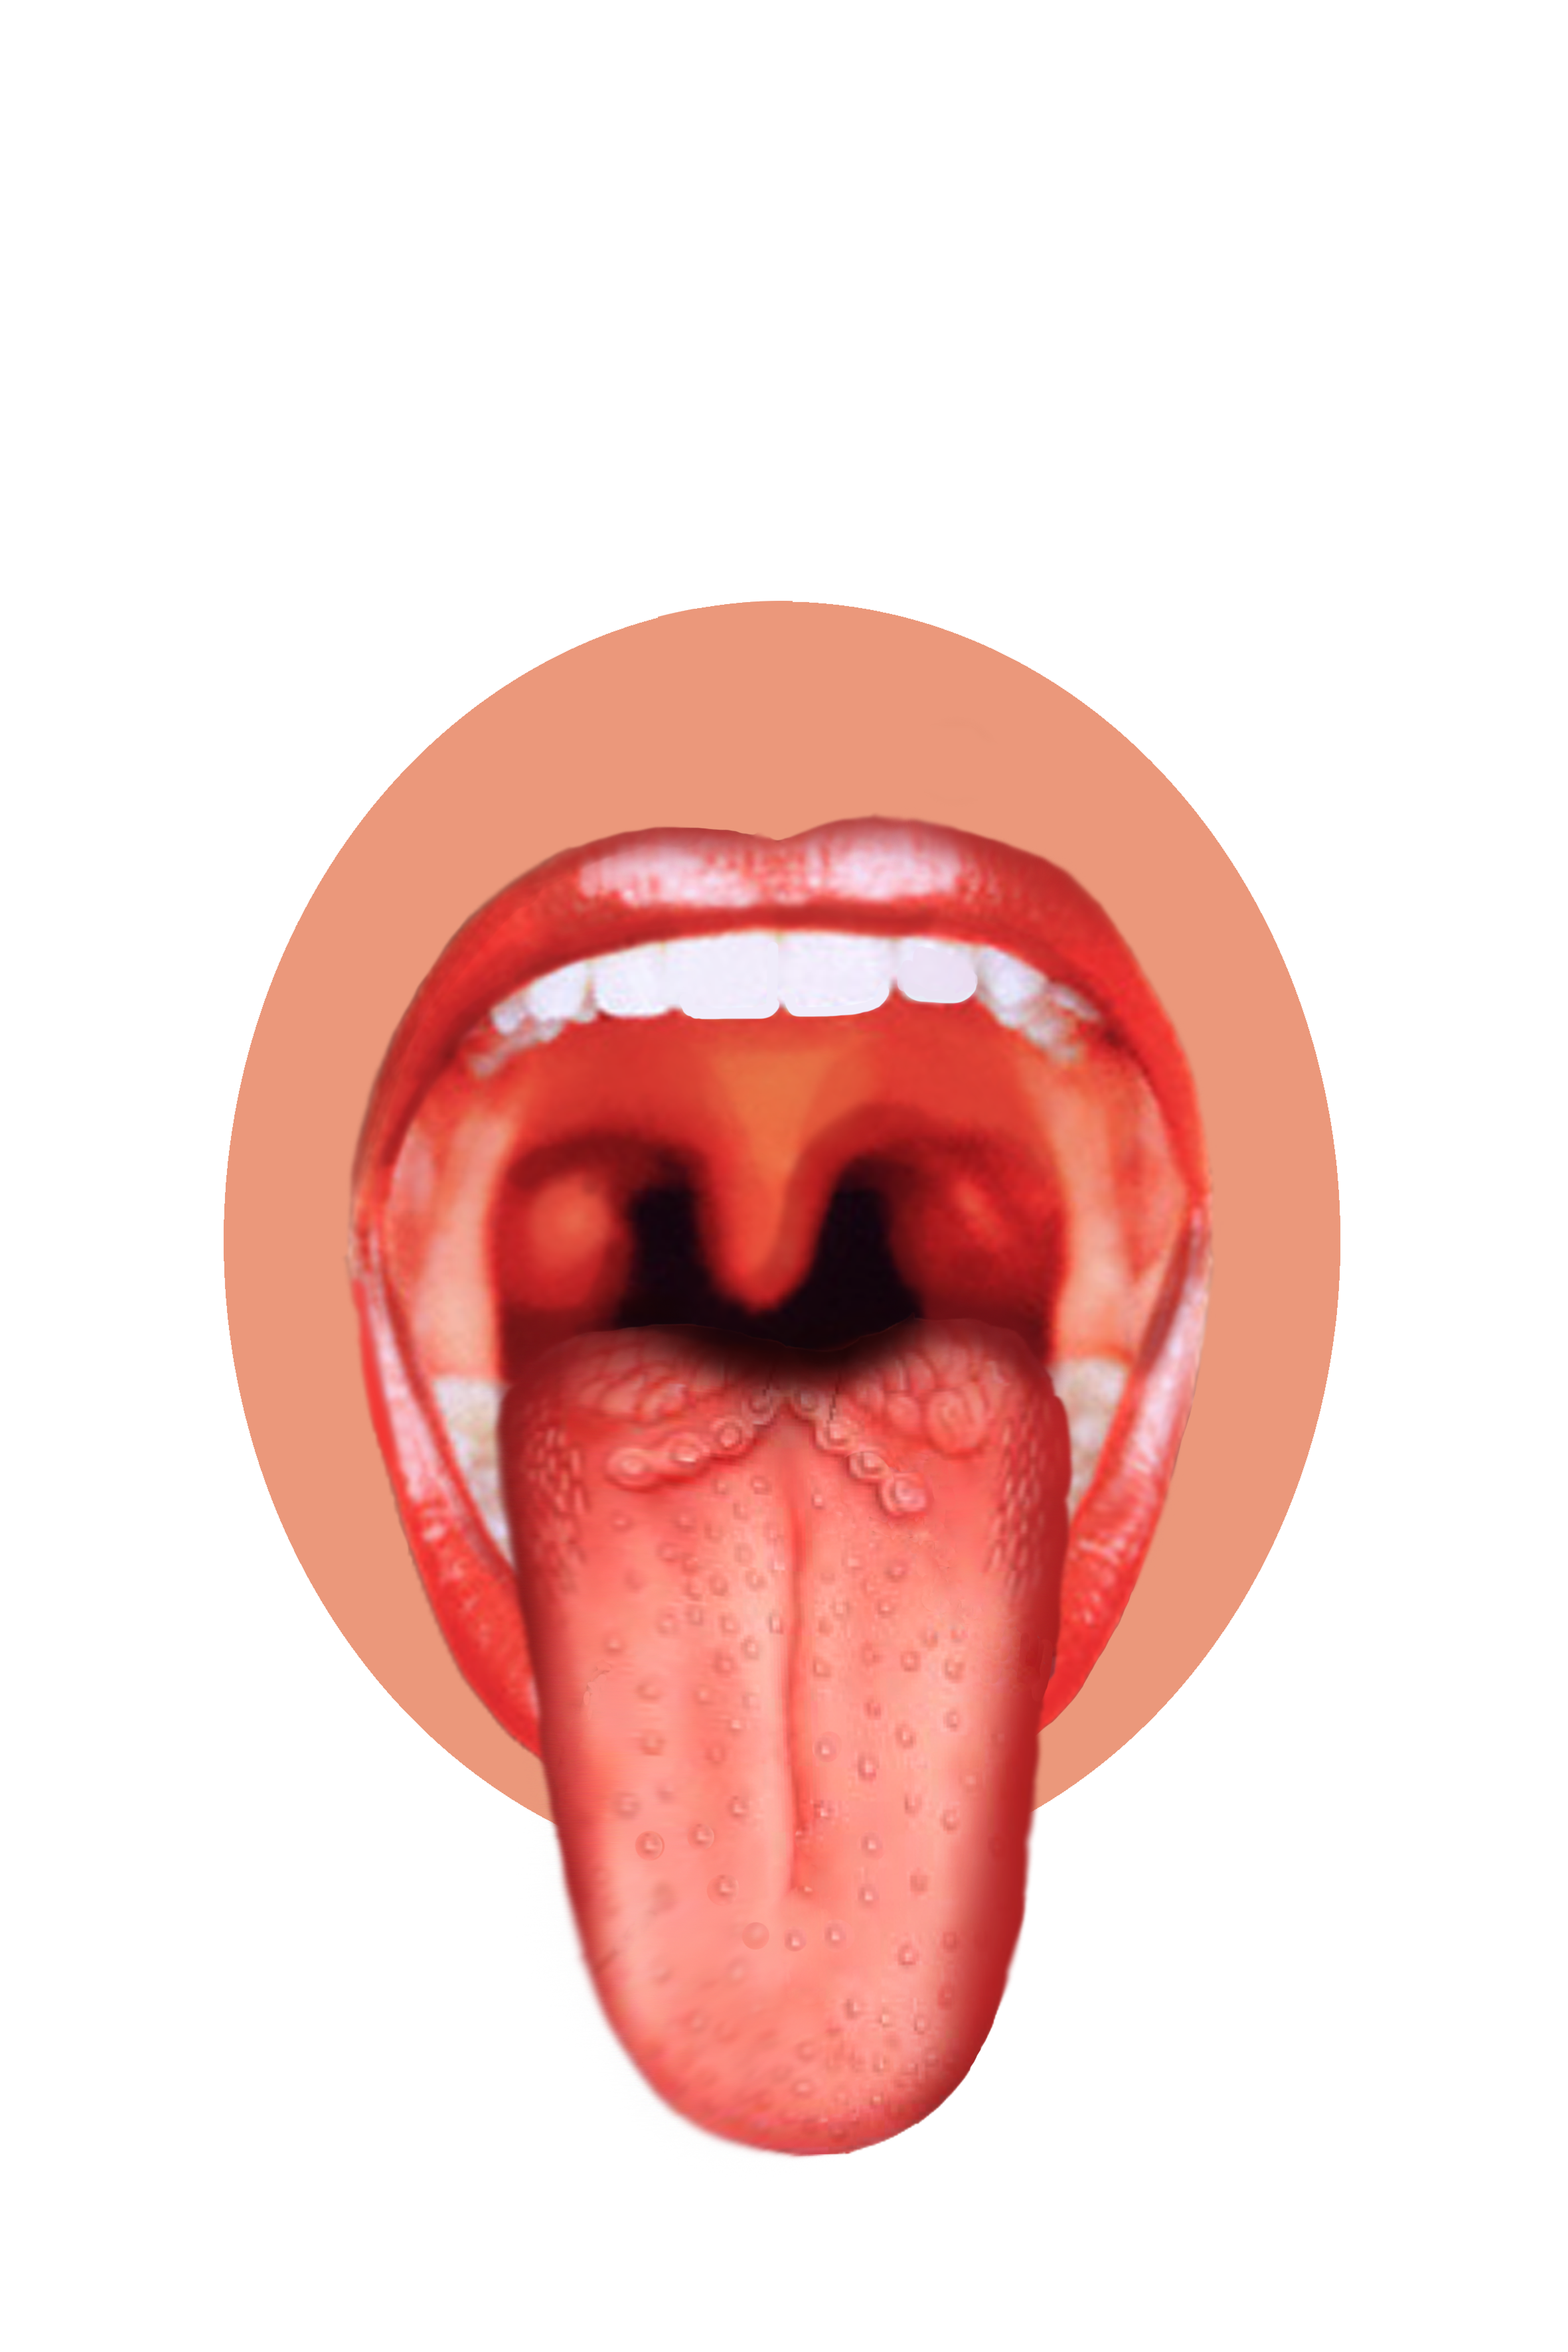 Taste clipart toung. Human tongue png image